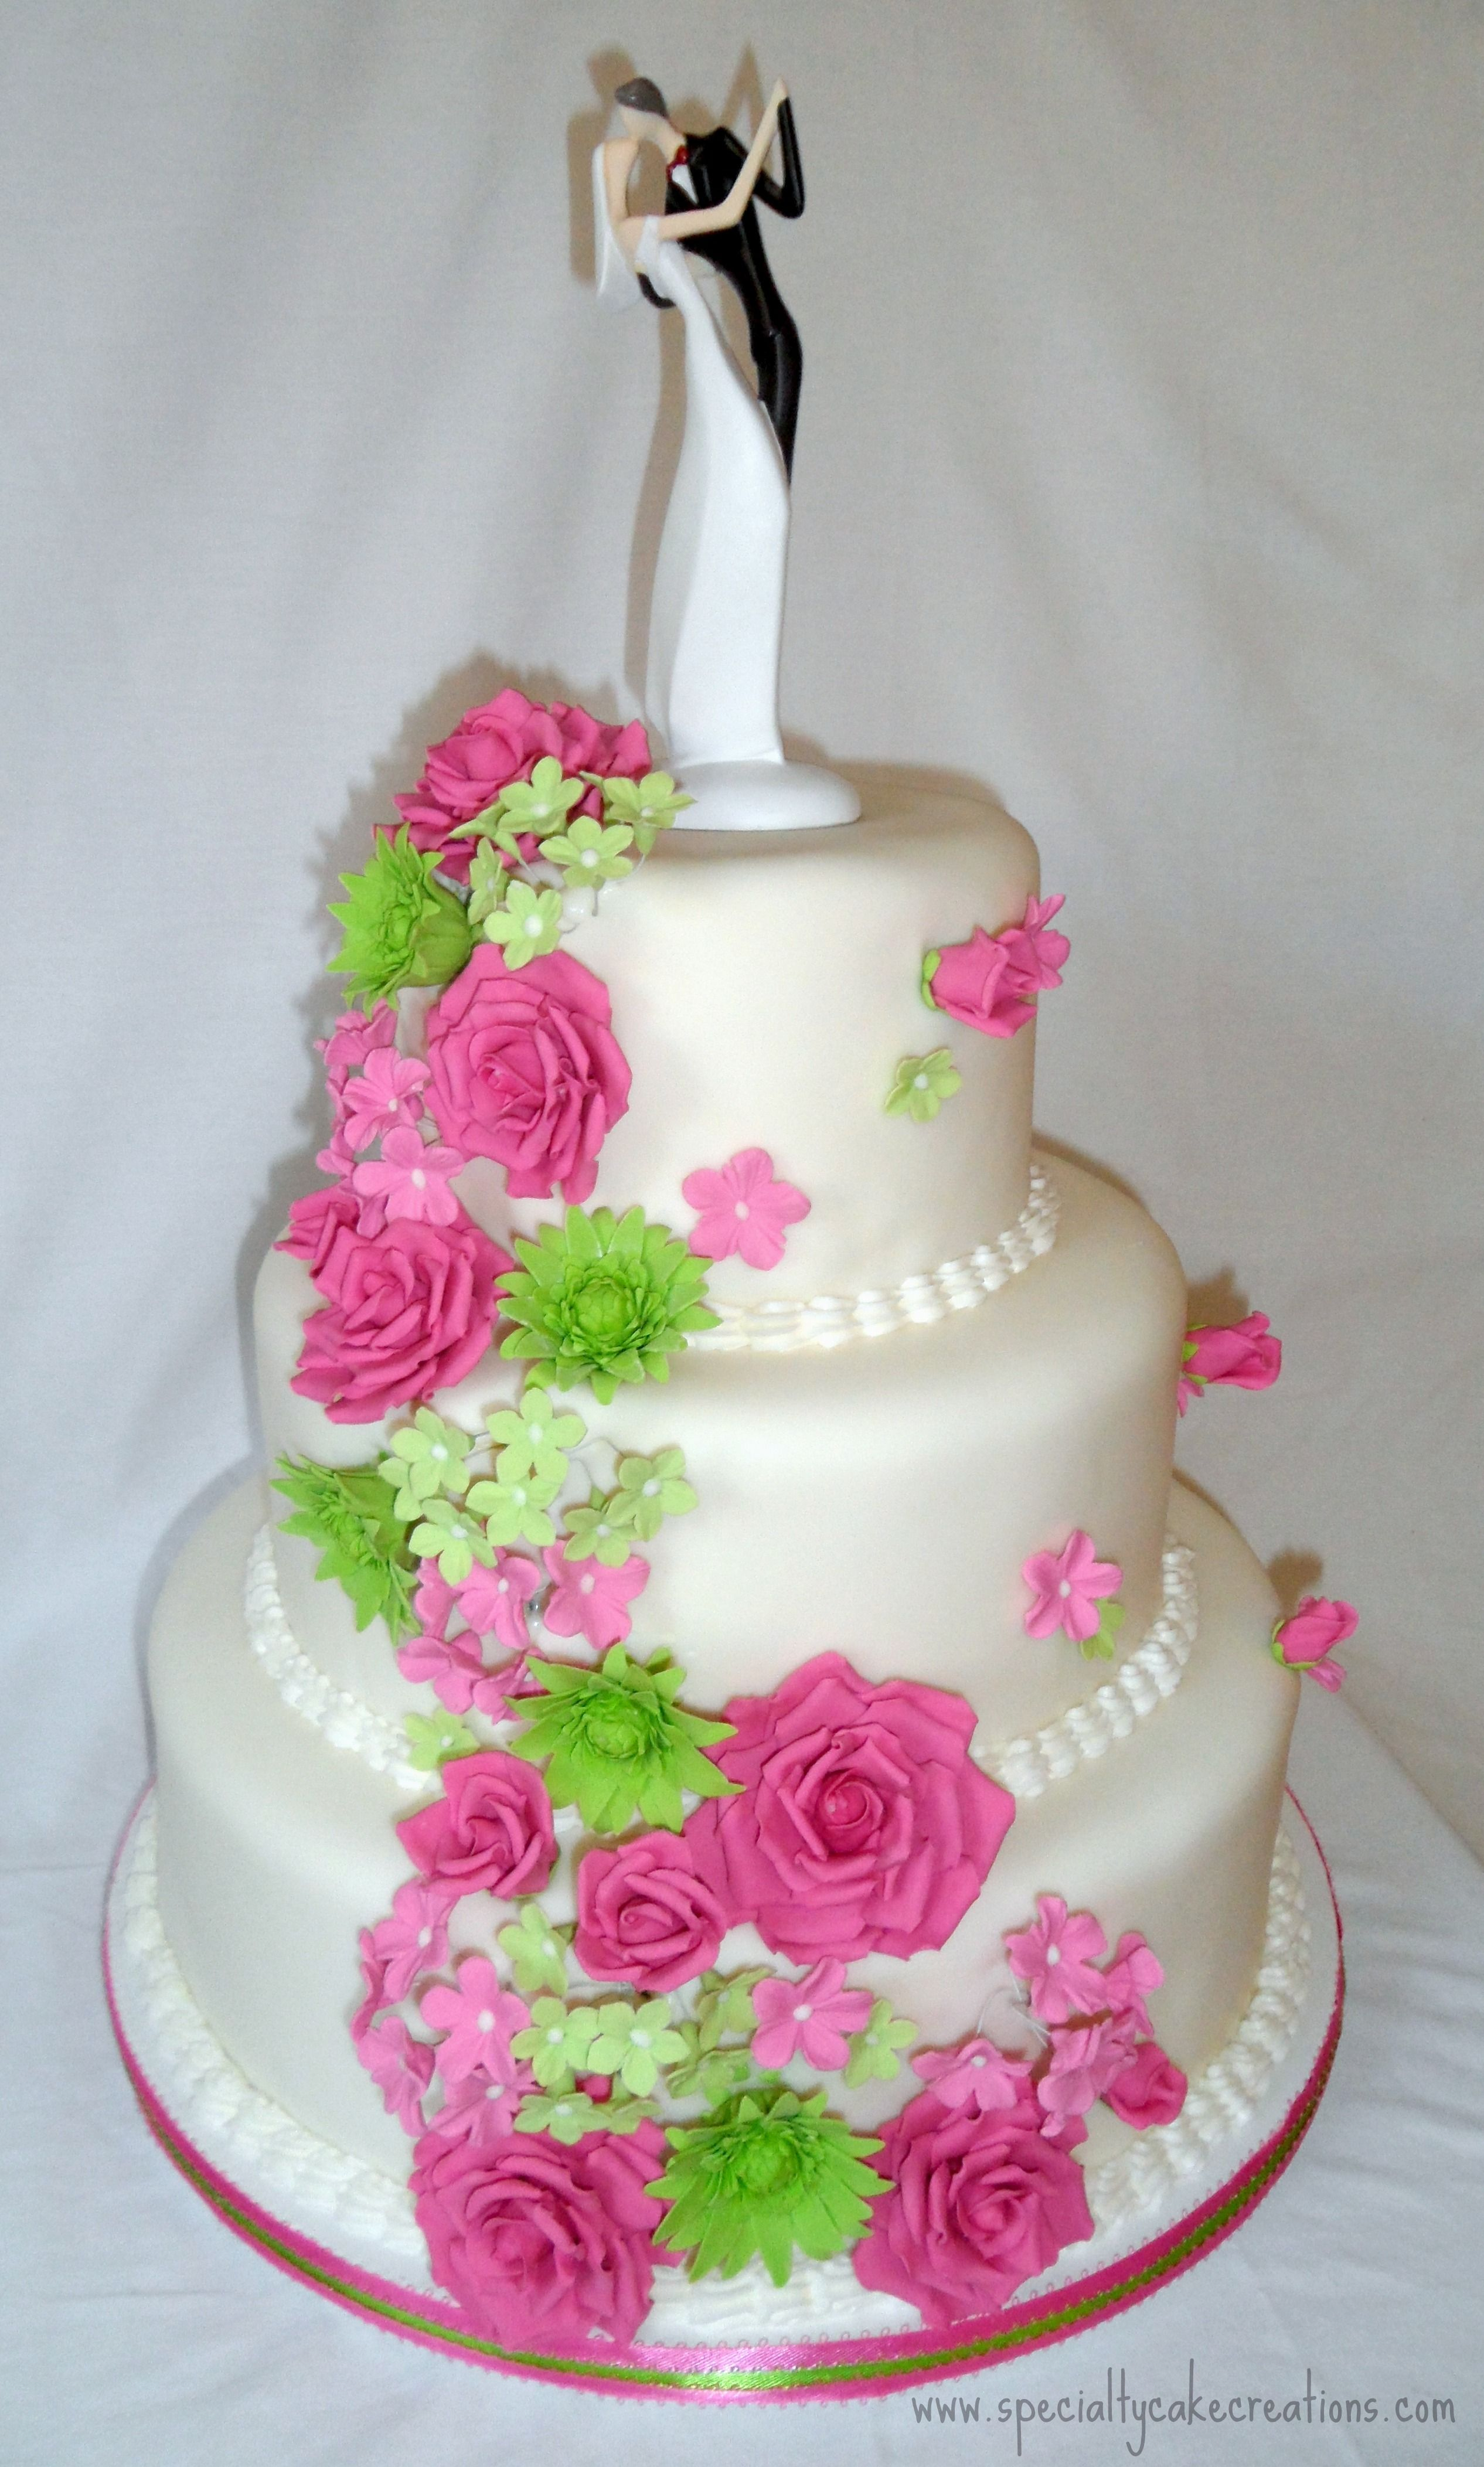 square black and white wedding cakes pictures%0A Hot Pink and Lime Green Cascading Flowers Wedding Cake